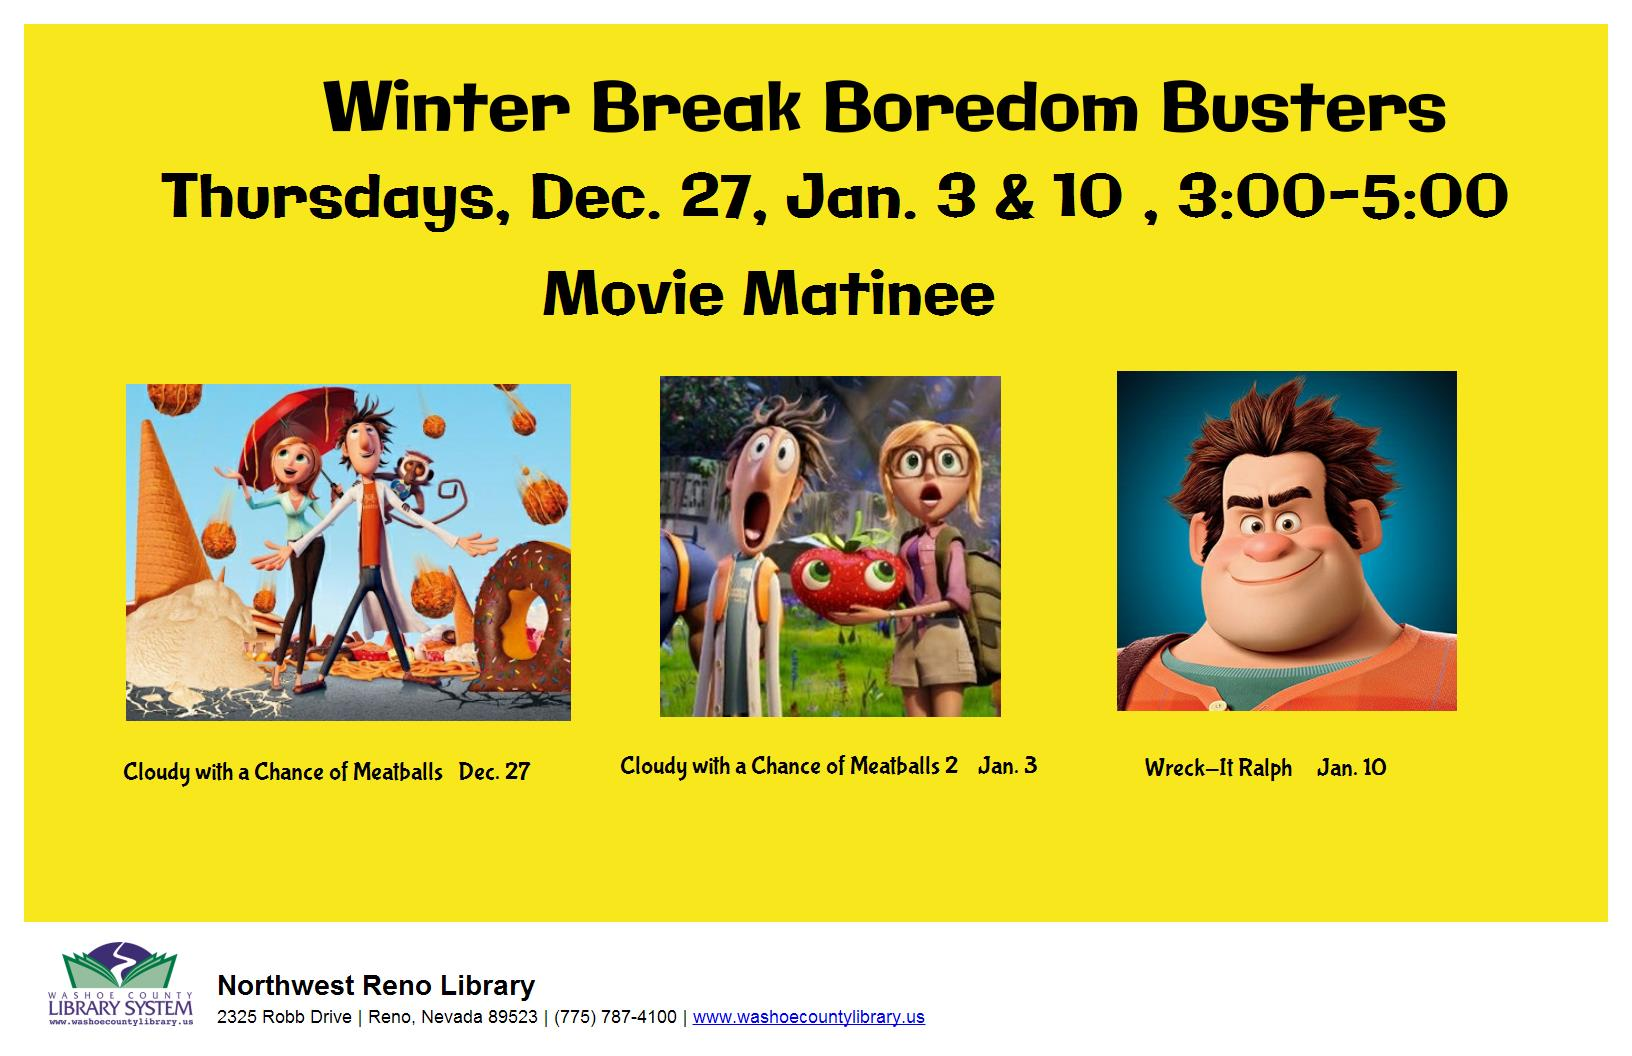 Boredom Busters Movie Matinee: Incredibles 2